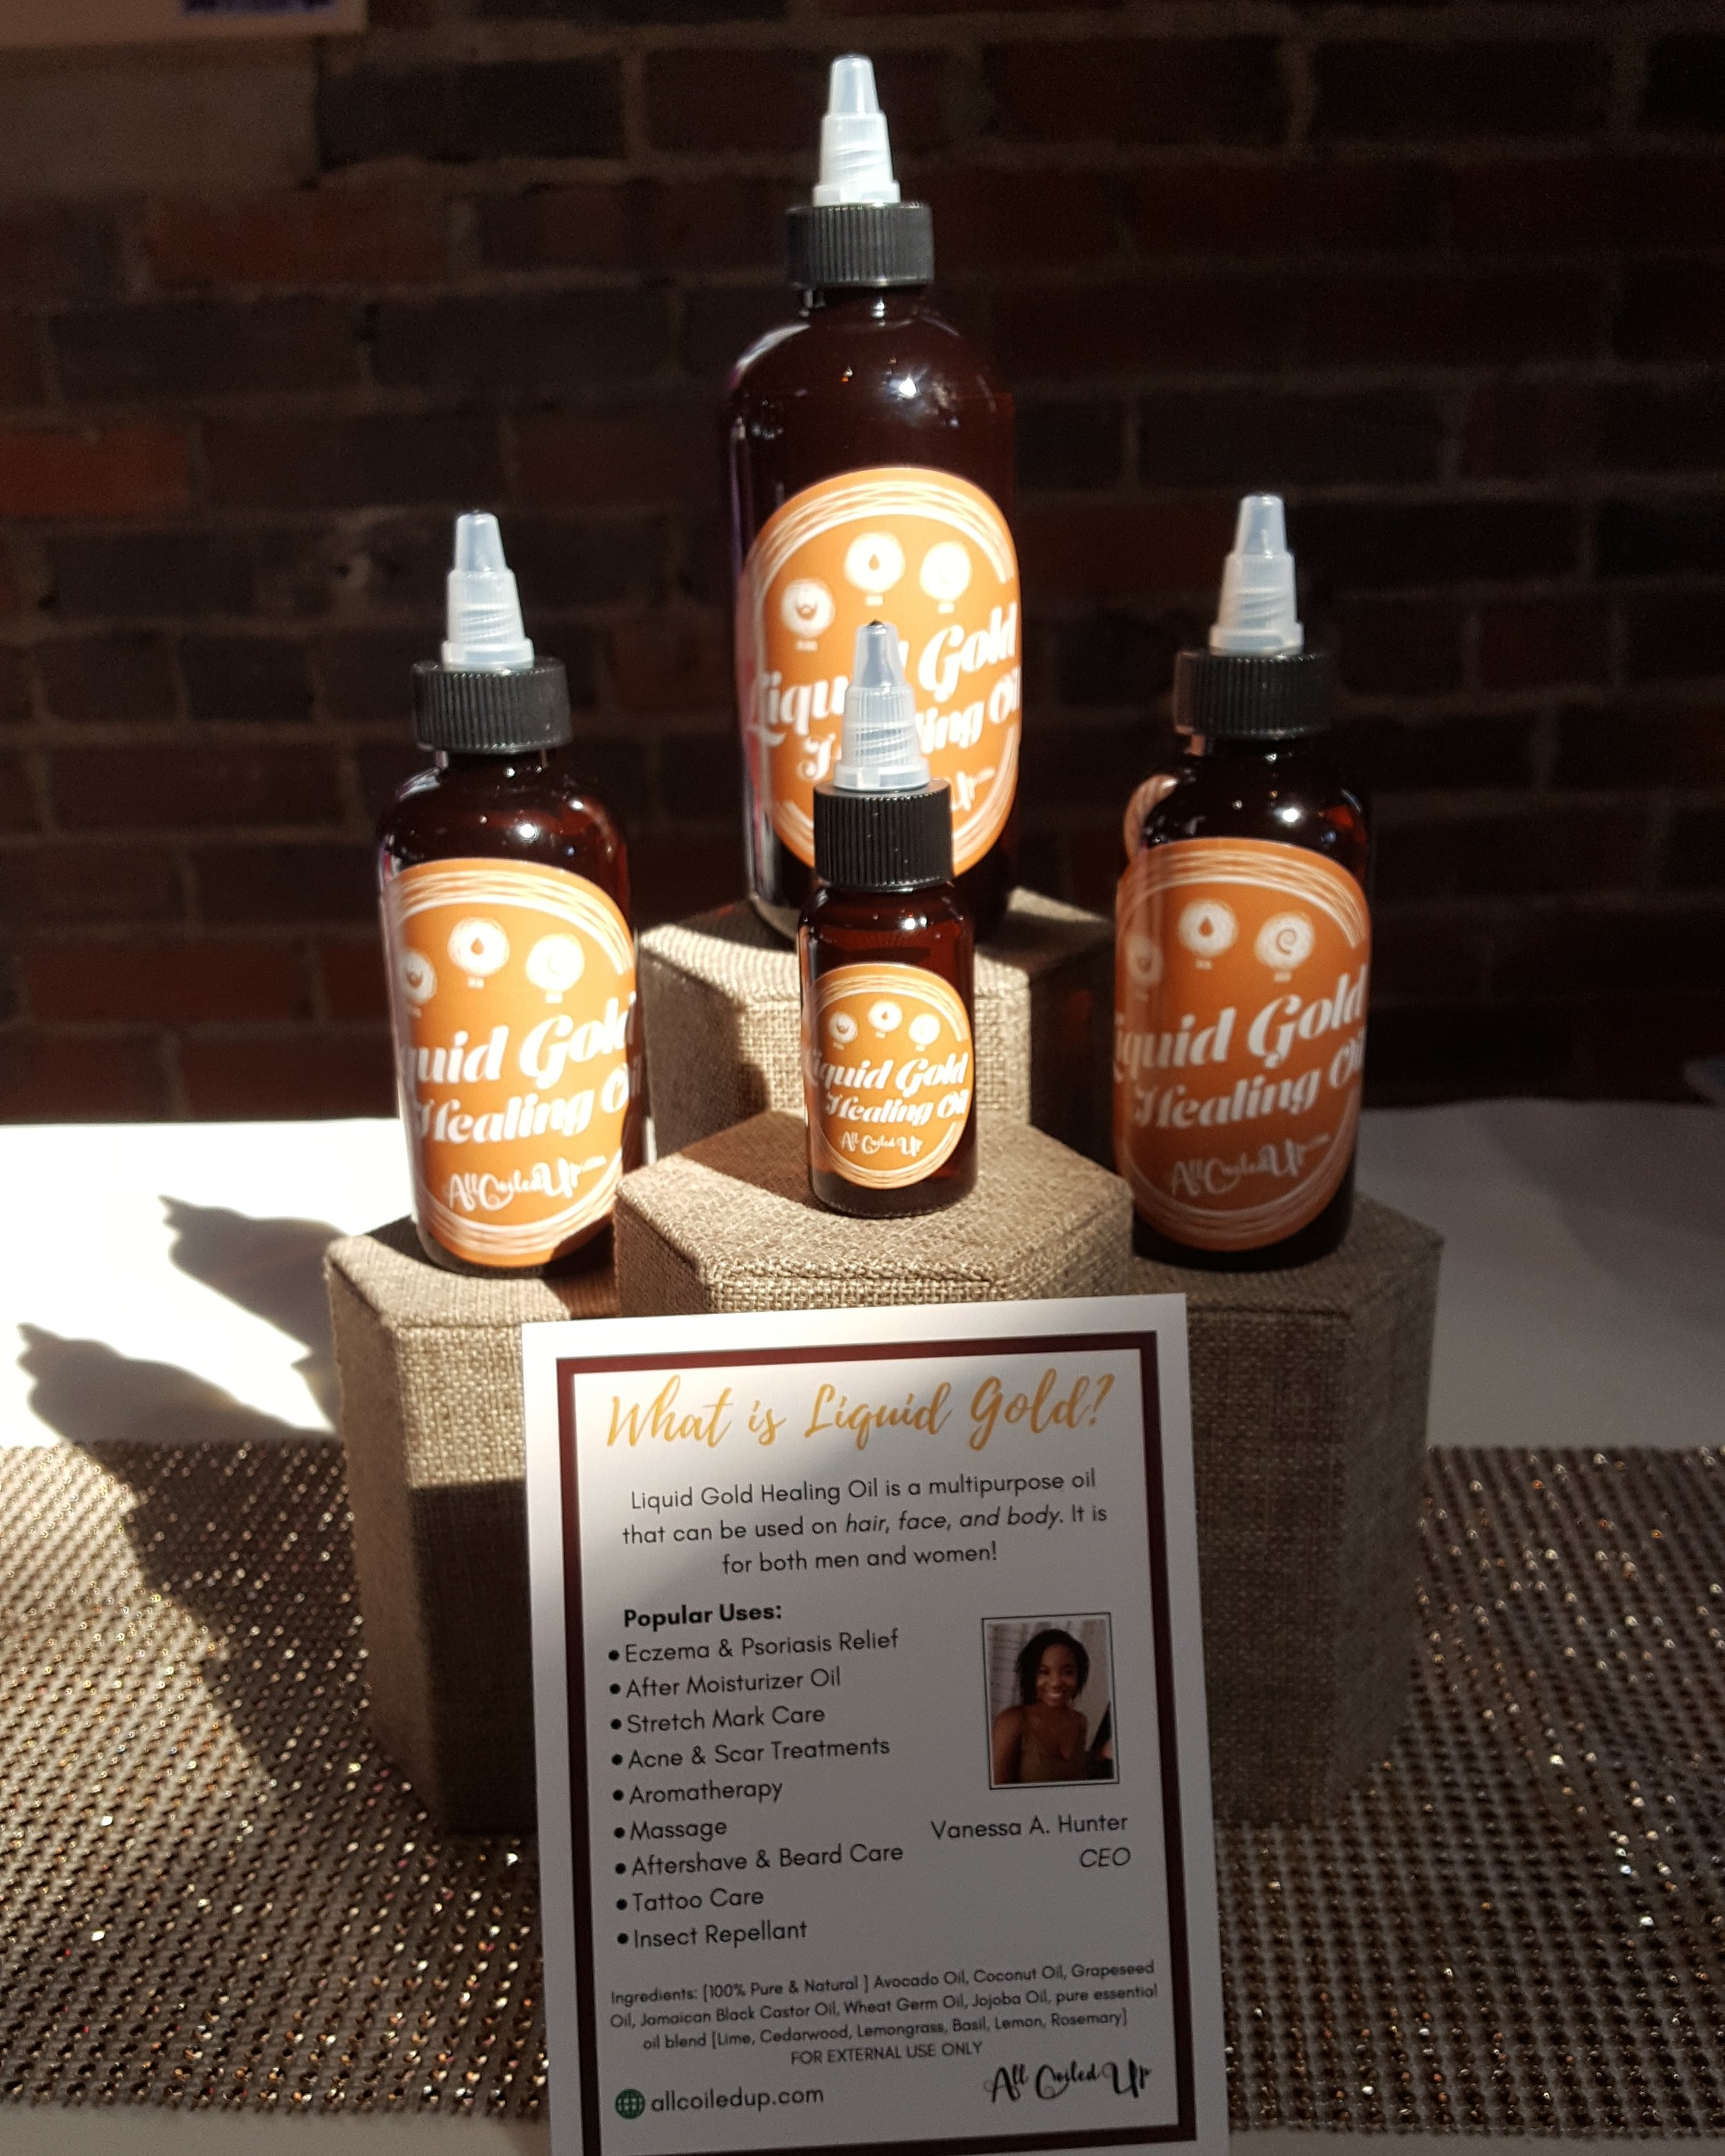 Bottles of Liquid Gold healing serum